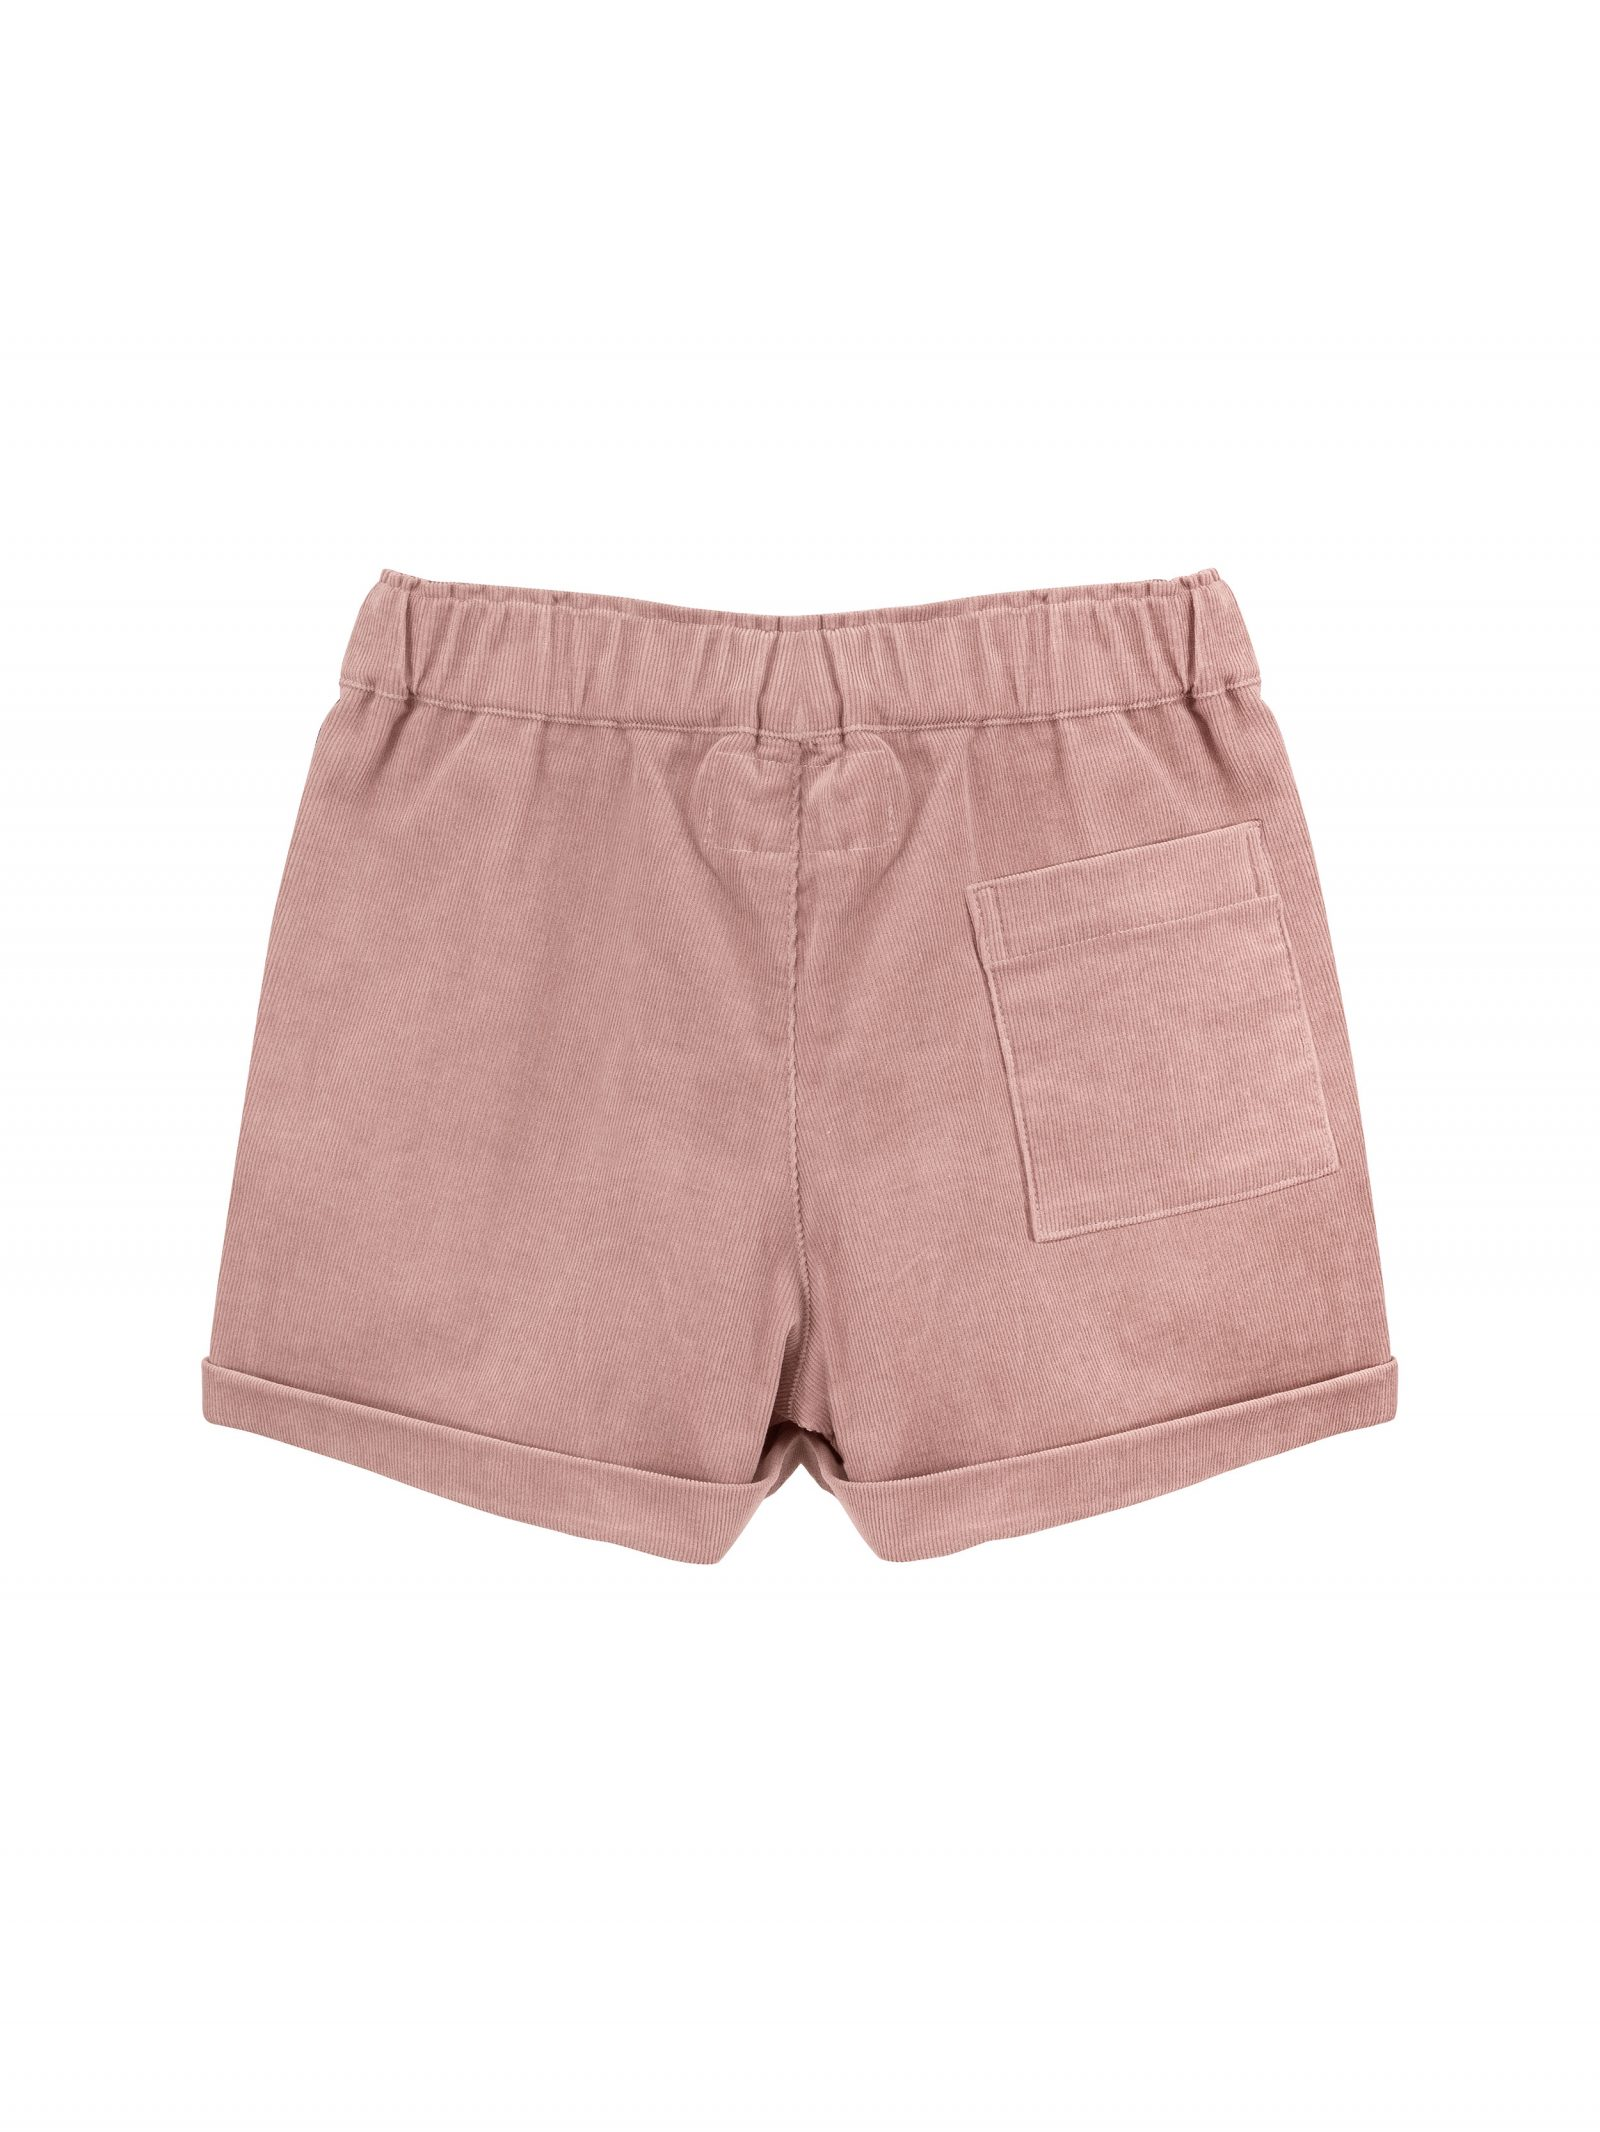 Charlotte Cord Shorts in Pink - Back